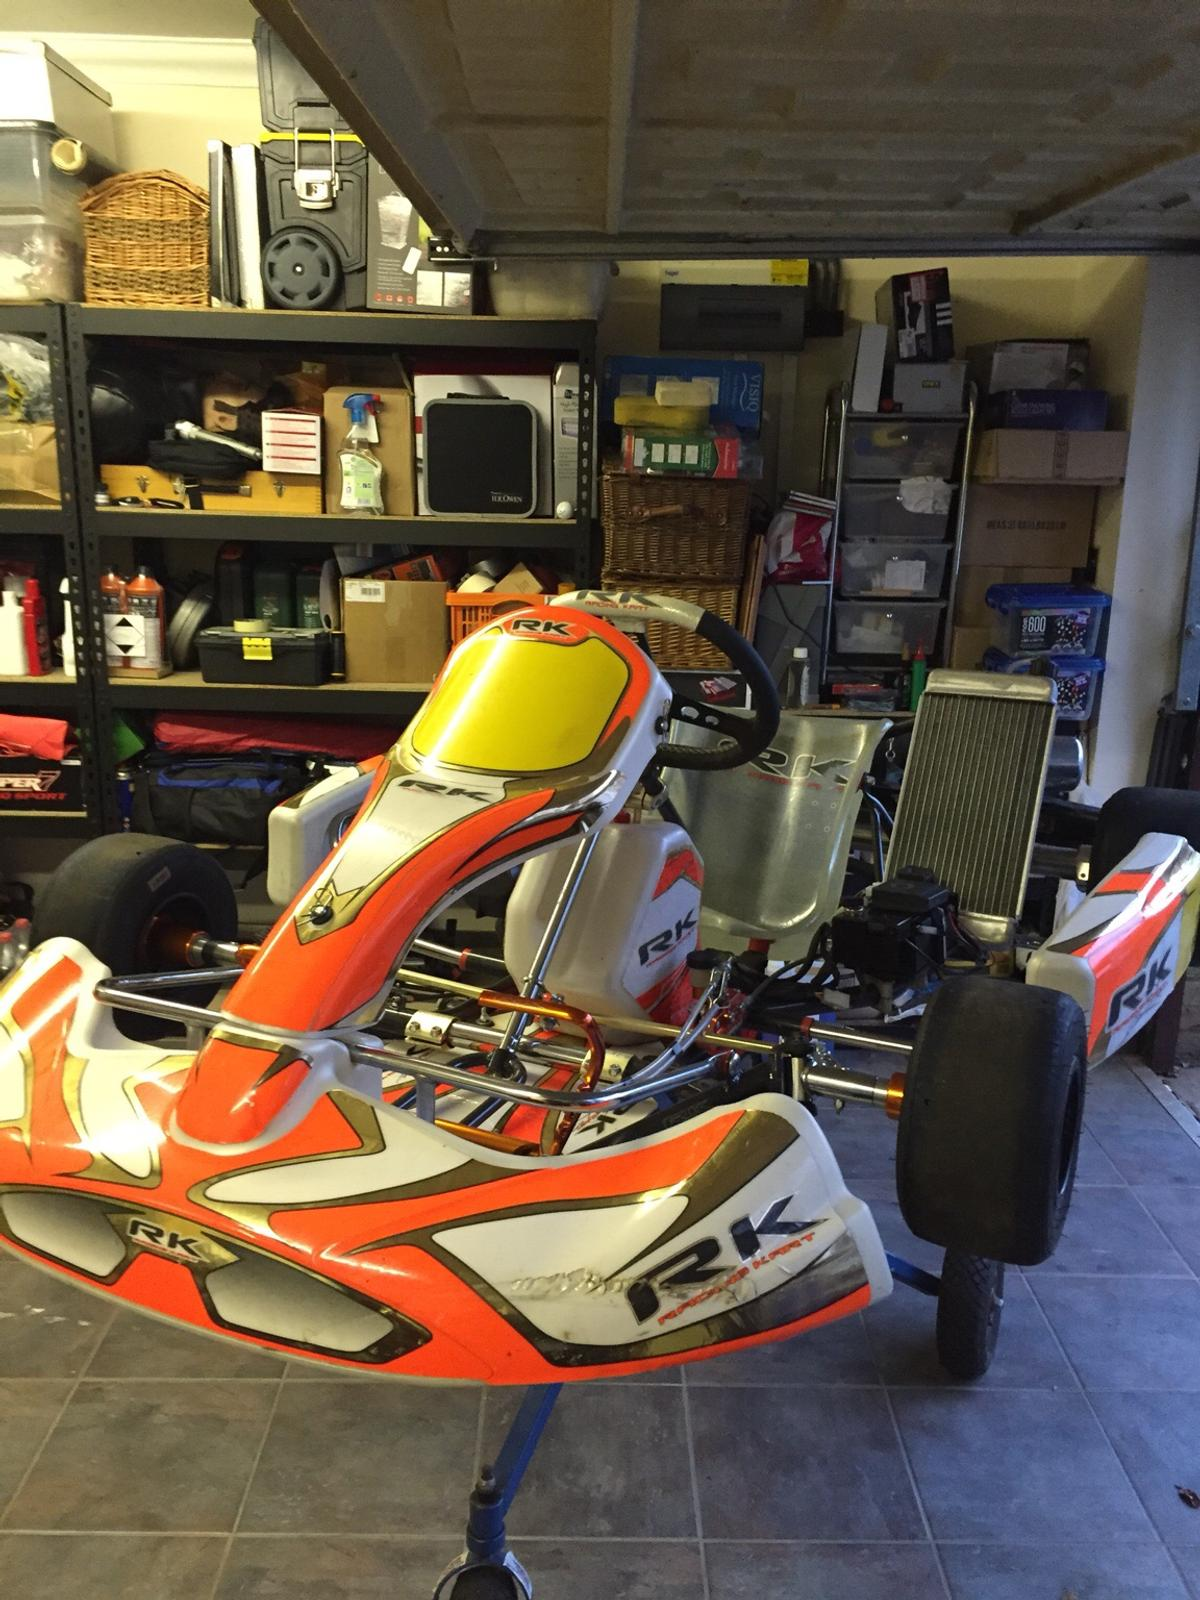 Rk racing chassis adult kart iame engine in LU4 Chalton for